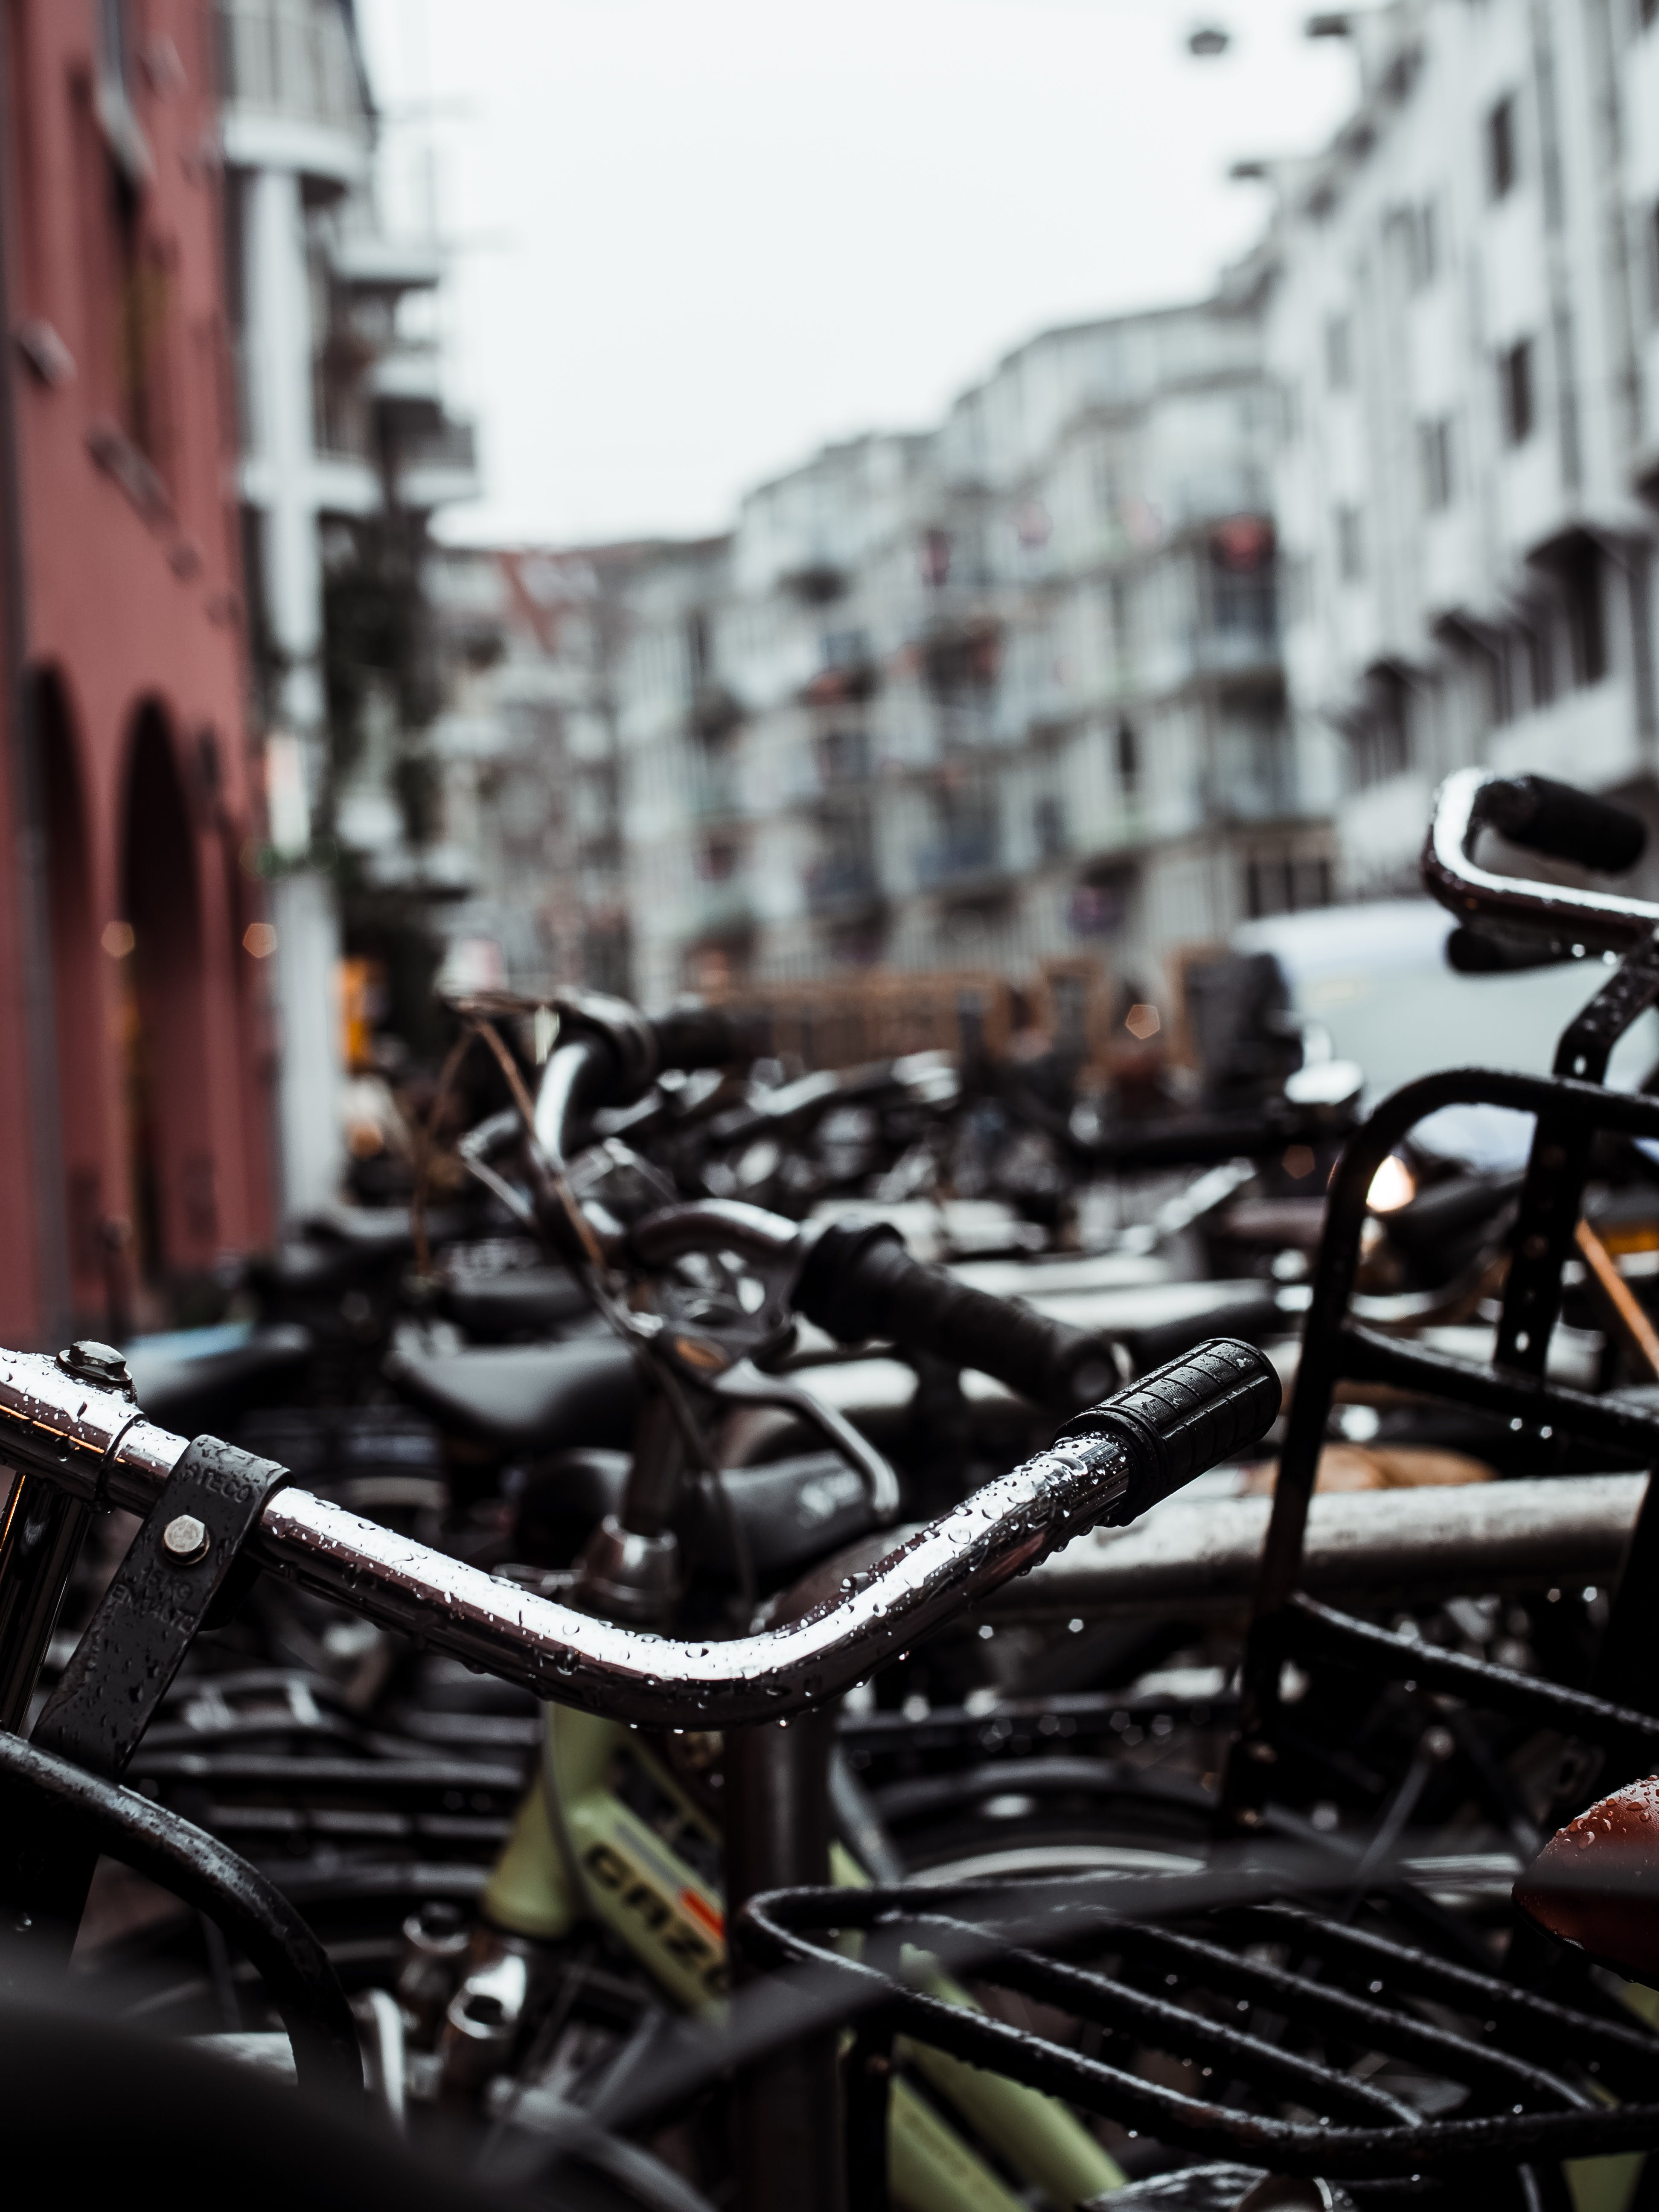 Close View of Bikes at the Middle of the Street